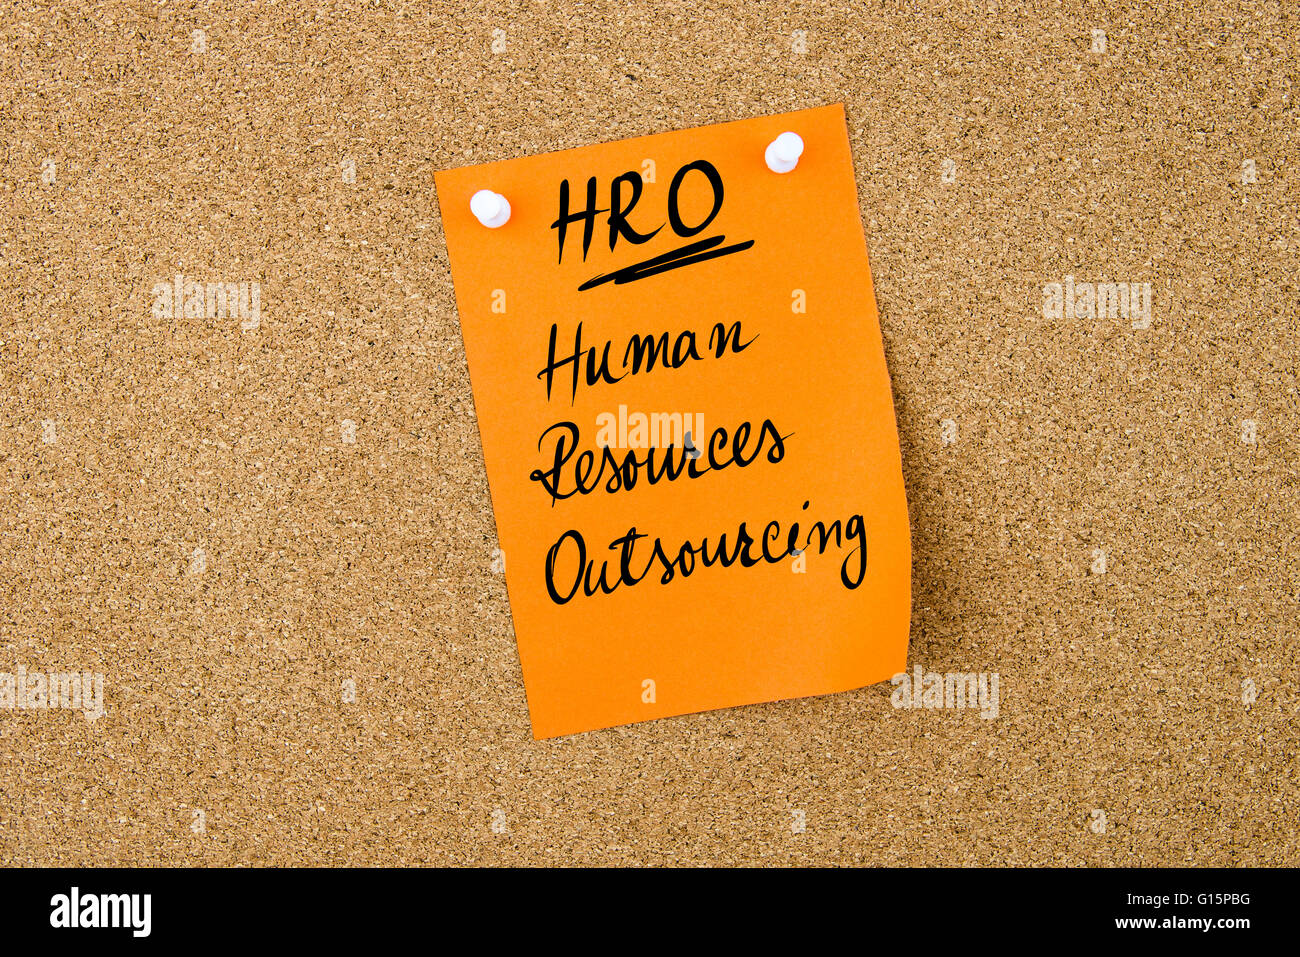 Business Acronym HRO Human Resources OutSourcing written on orange paper note pinned on cork board with white thumbtack, - Stock Image